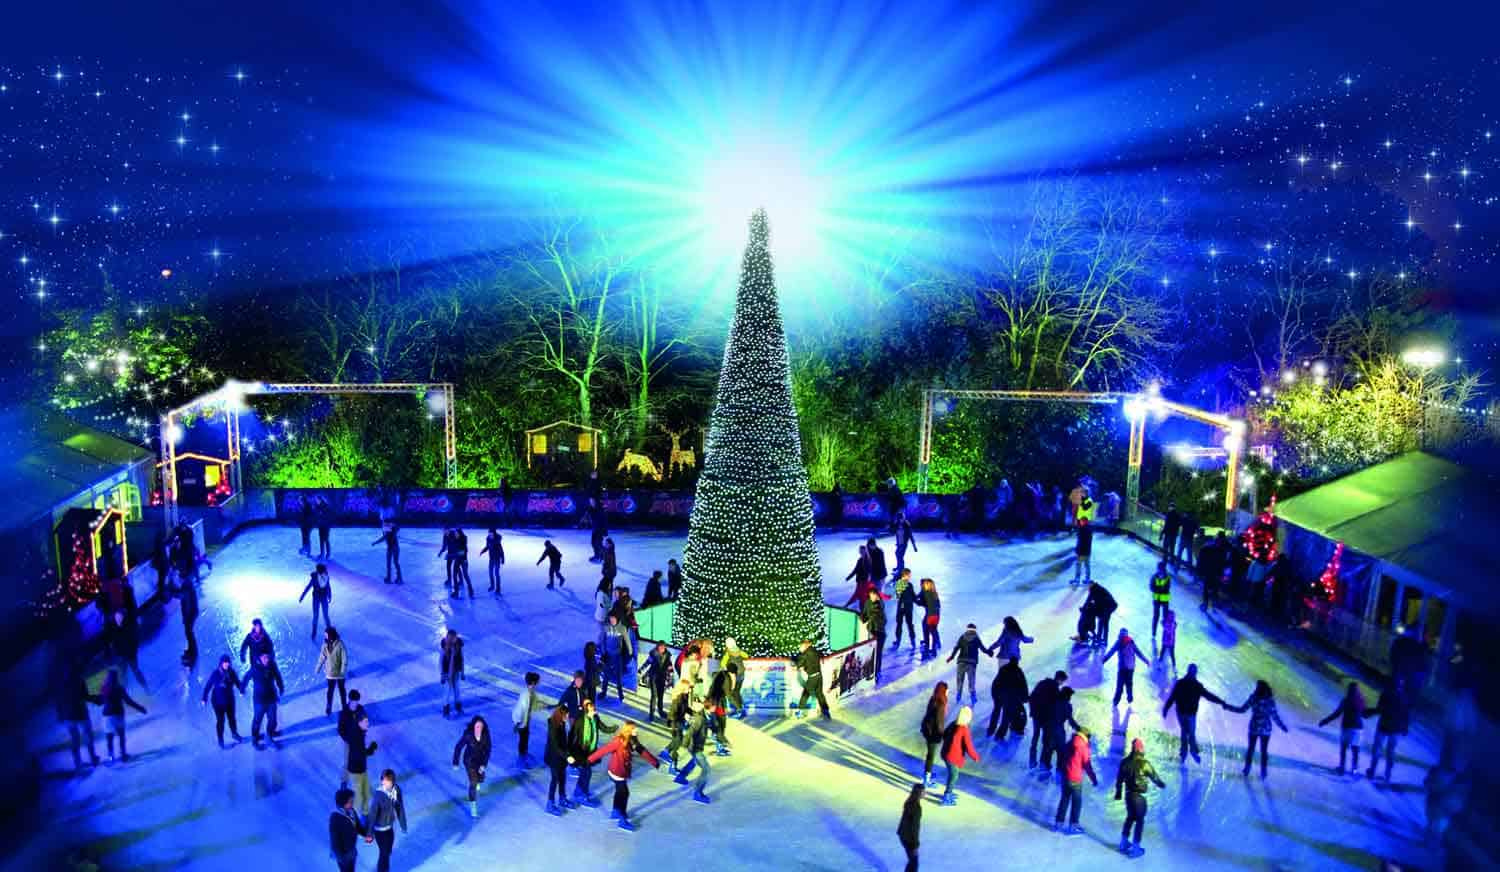 Festive Christmas Ice Skating in Yorkshire 2018